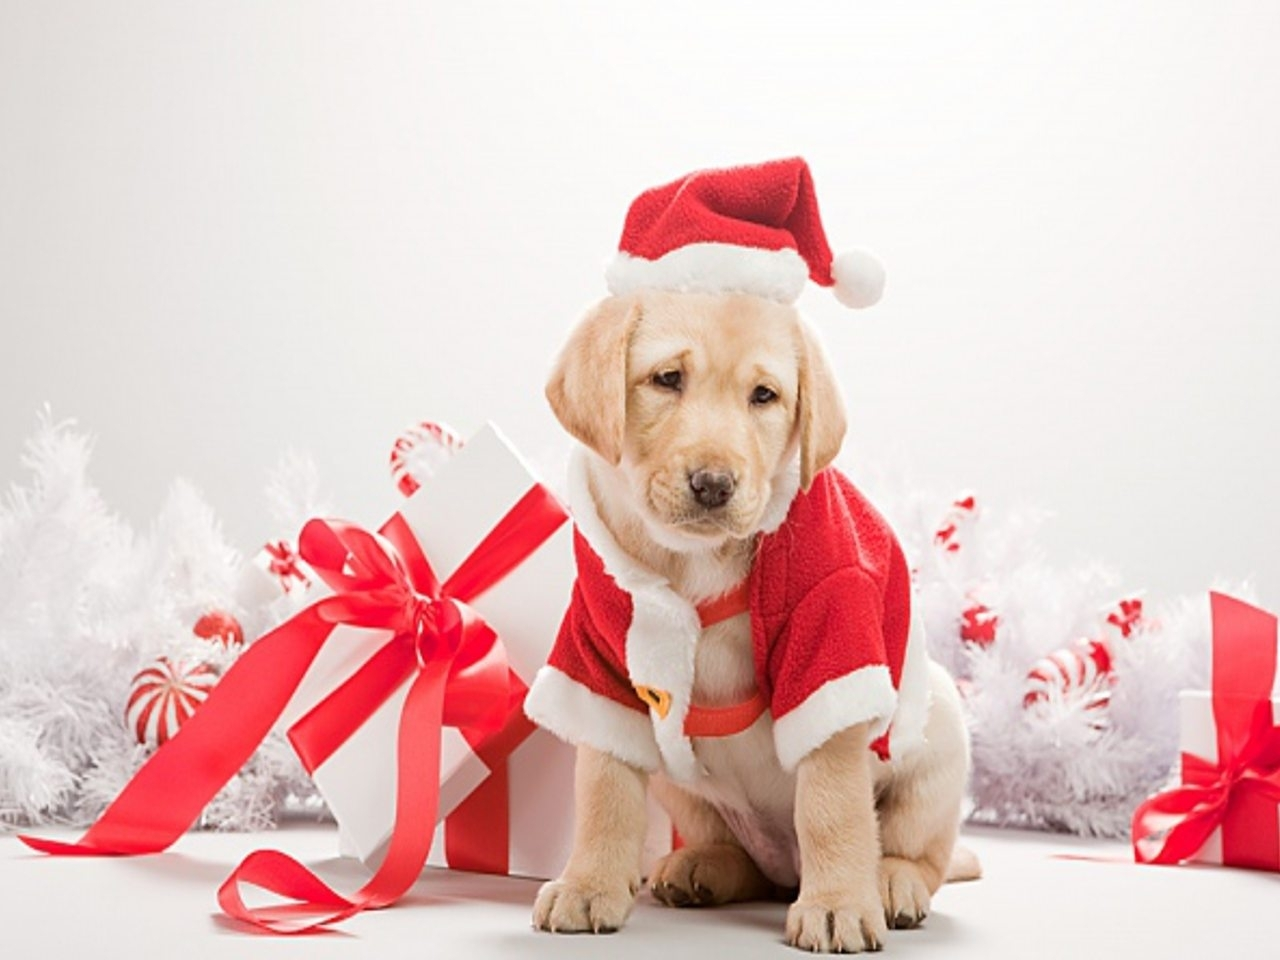 dog merry christmas 2015 wallpaper - hd wallpapers